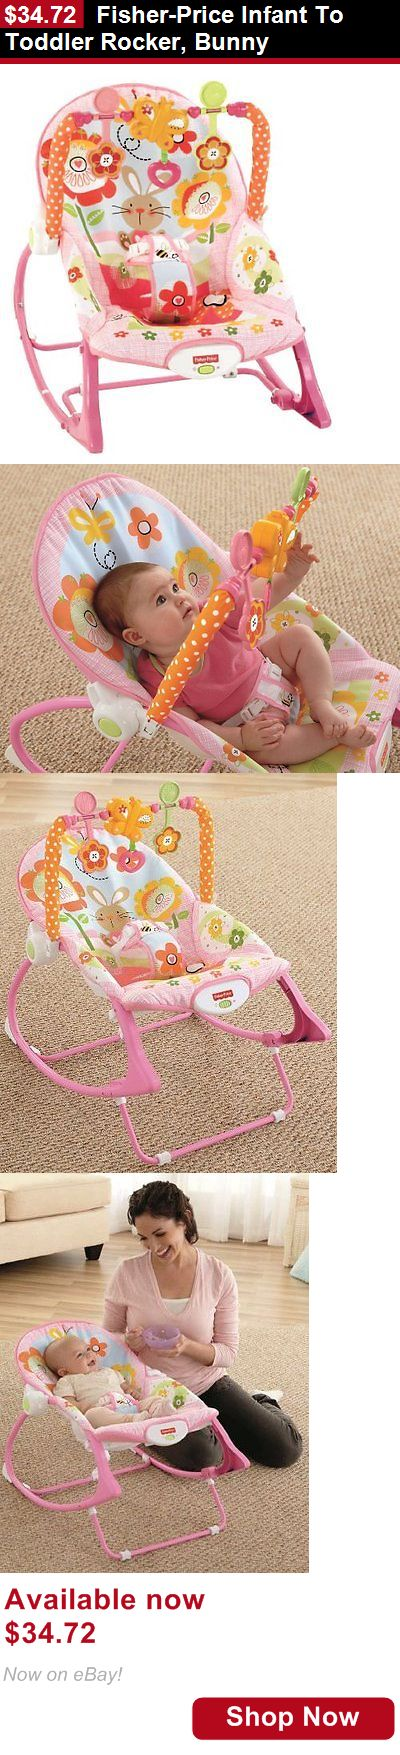 Baby bouncers and vibrating chairs: Fisher-Price Infant To Toddler Rocker, Bunny BUY IT NOW ONLY: $34.72